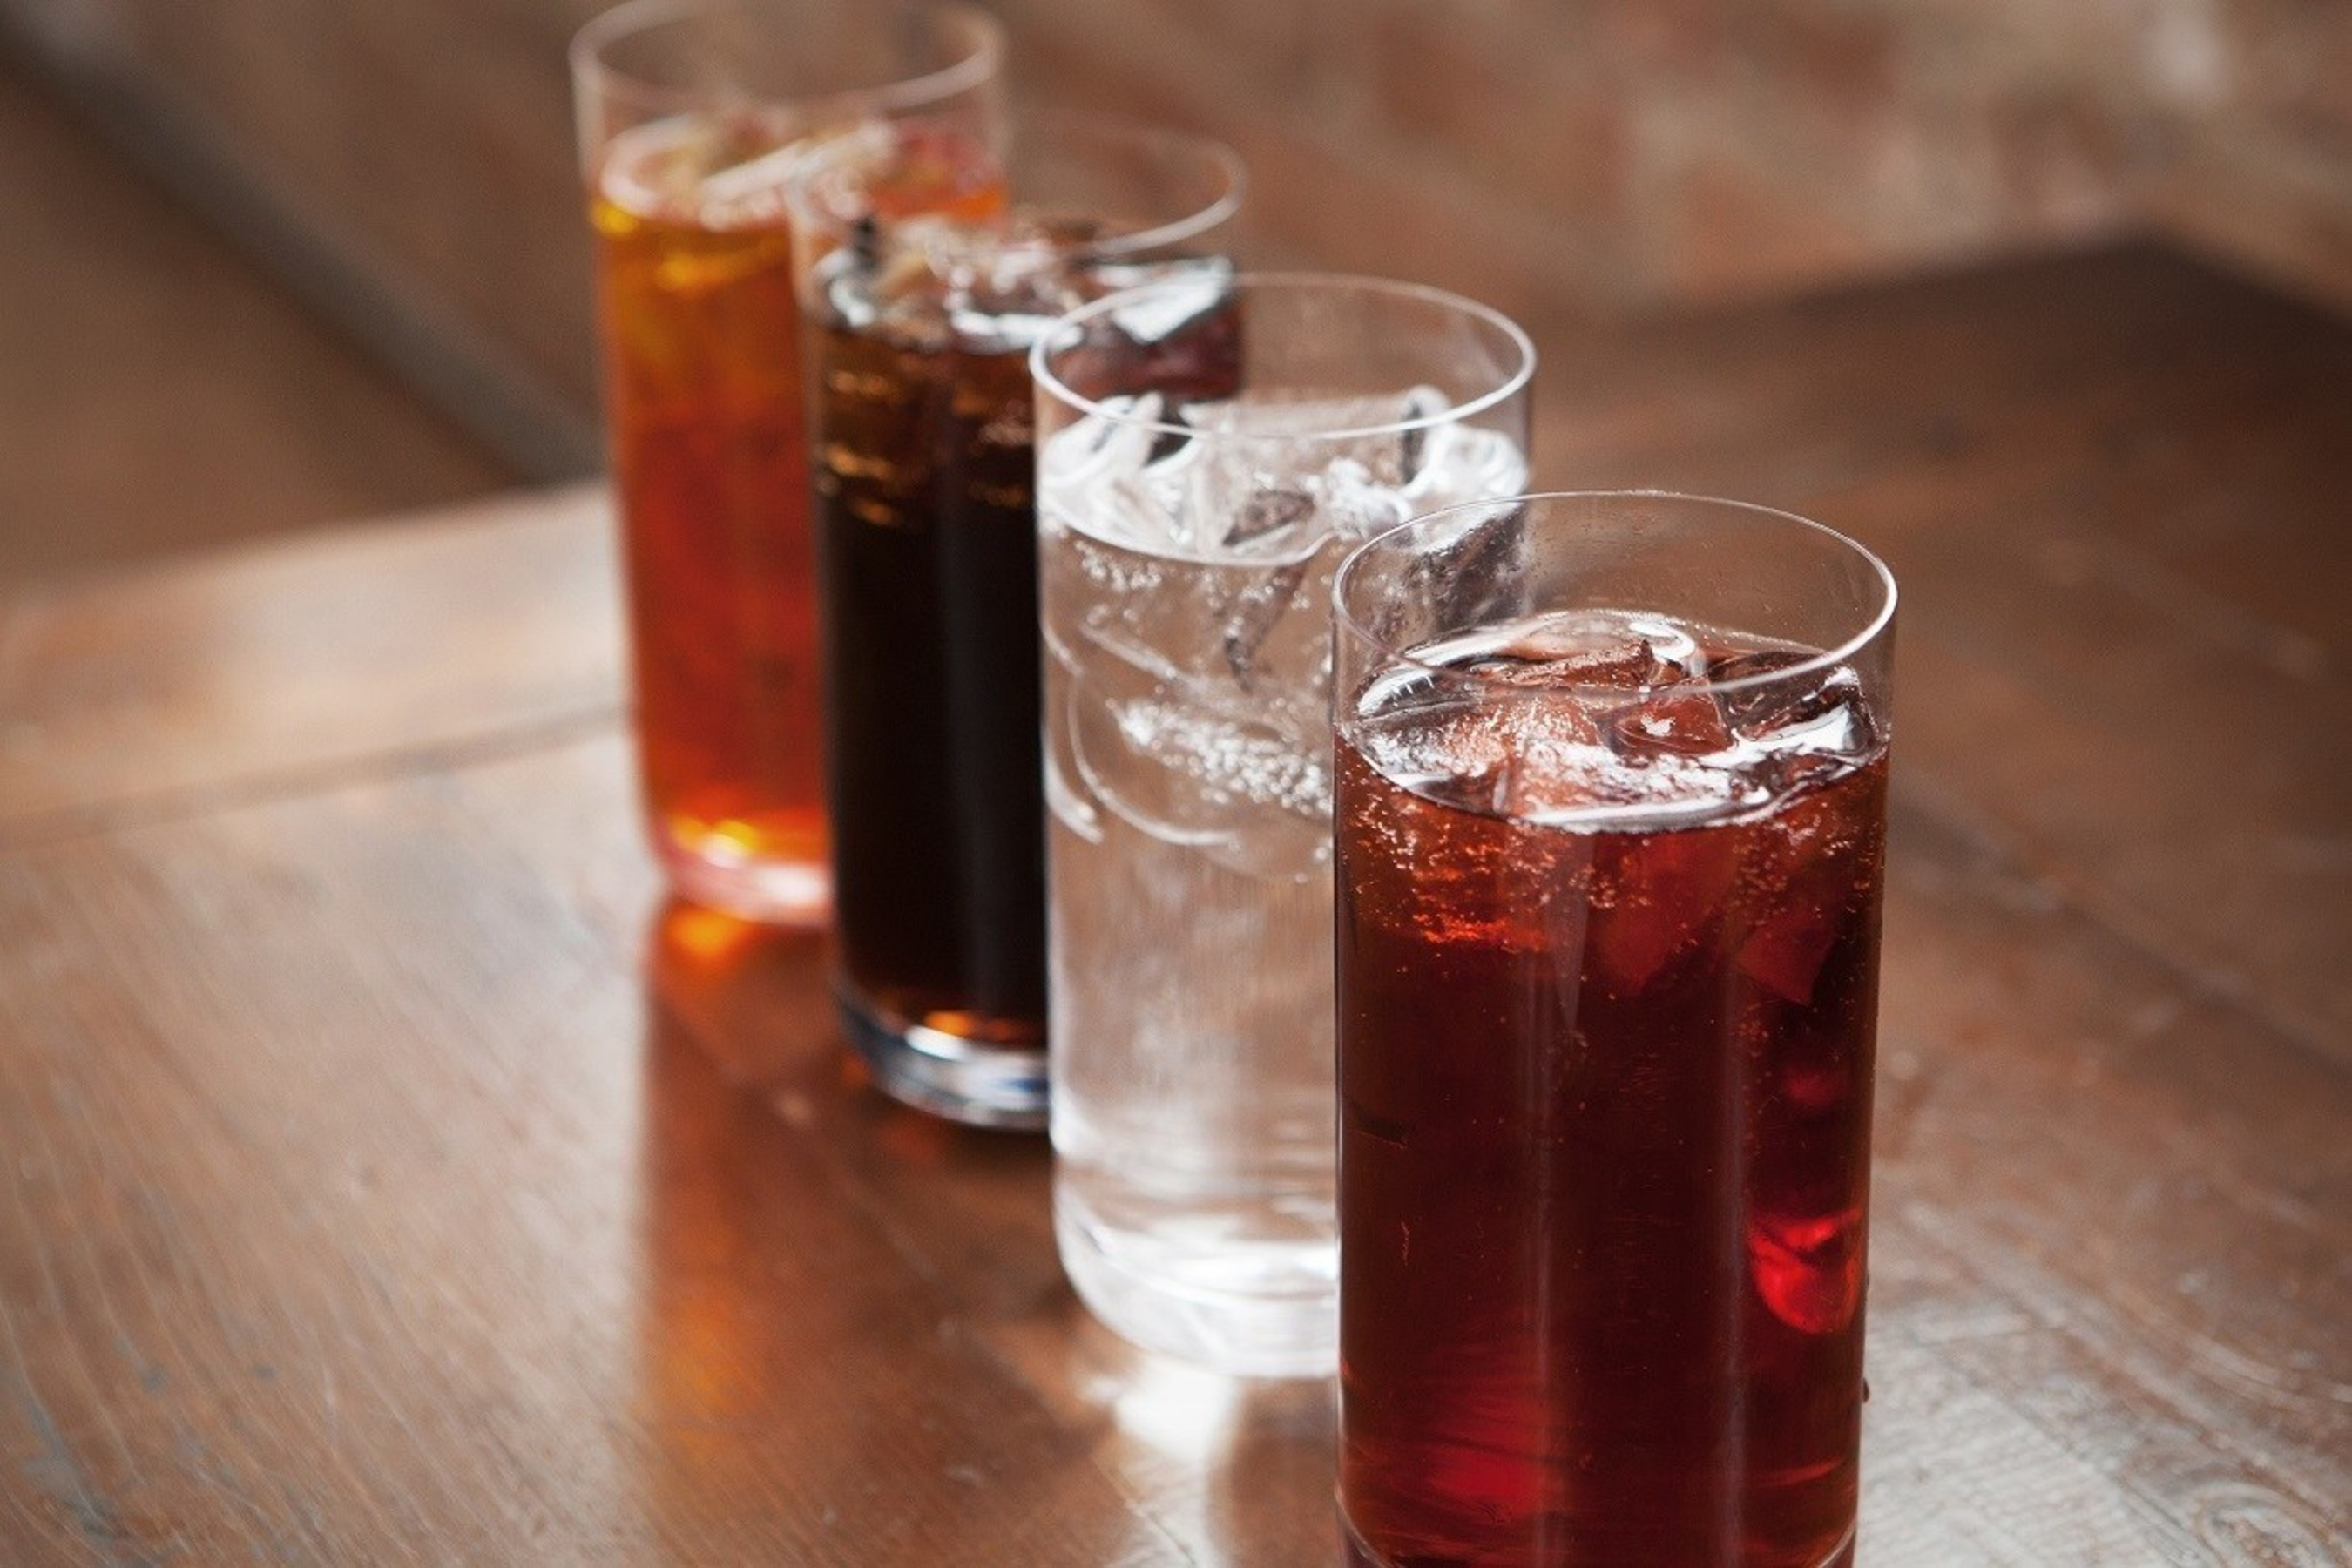 PureCircle's Sigma-Beverage stevia ingredient is the perfect solution for sweet beverages.